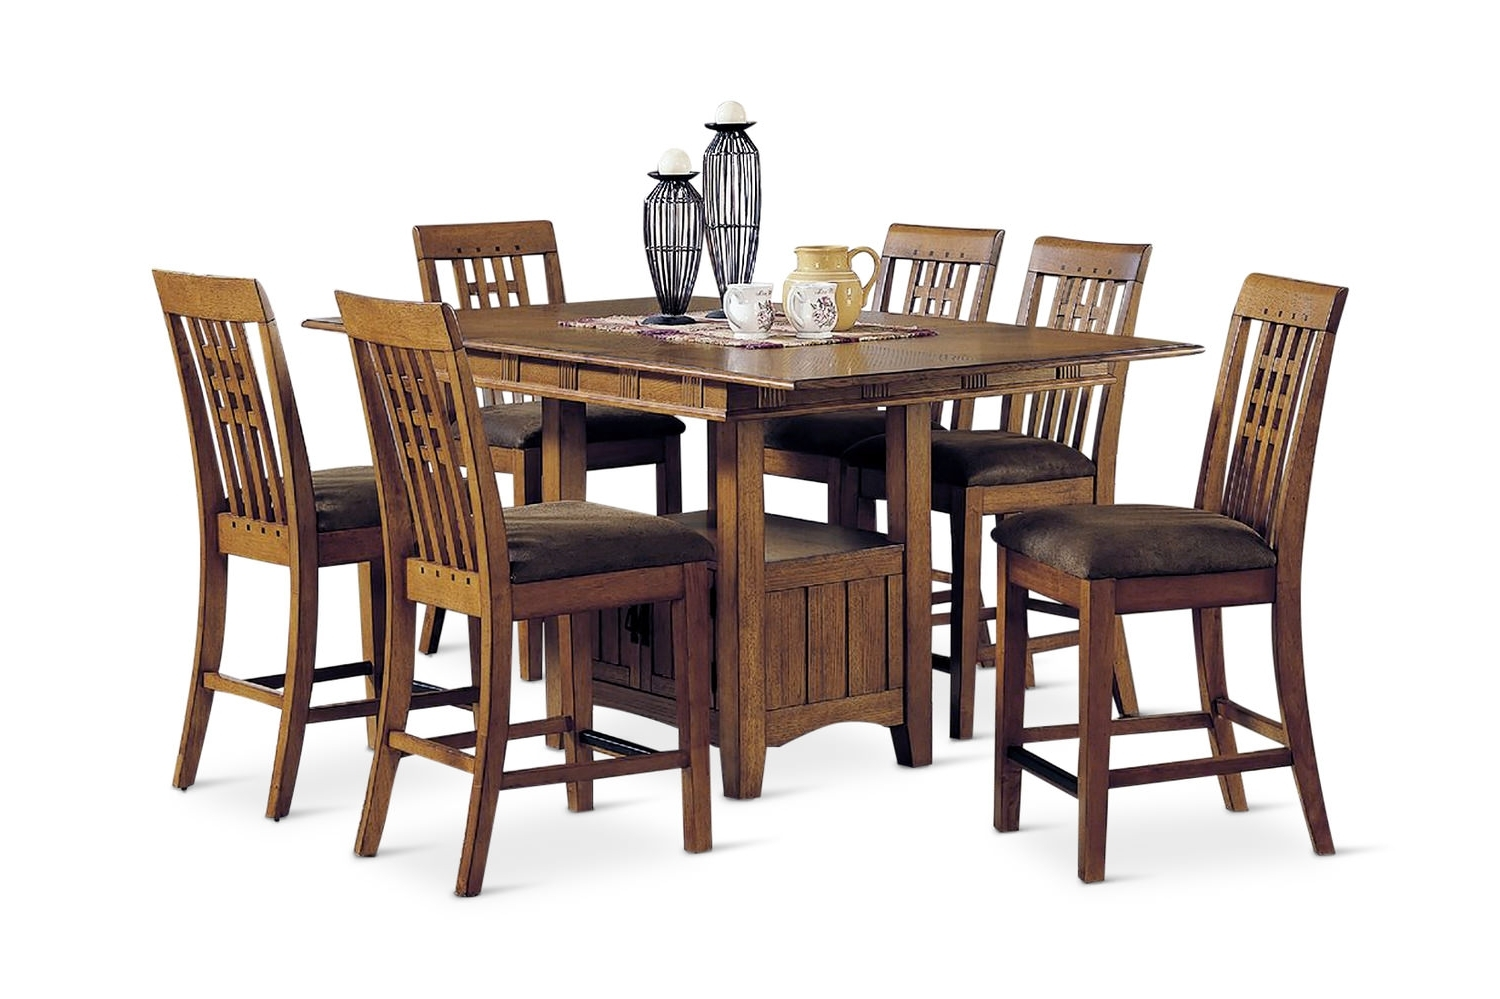 Dining Sets – Kitchen & Dining Room Sets – Hom Furniture Throughout Well Known Craftsman 7 Piece Rectangular Extension Dining Sets With Arm & Uph Side Chairs (View 17 of 25)